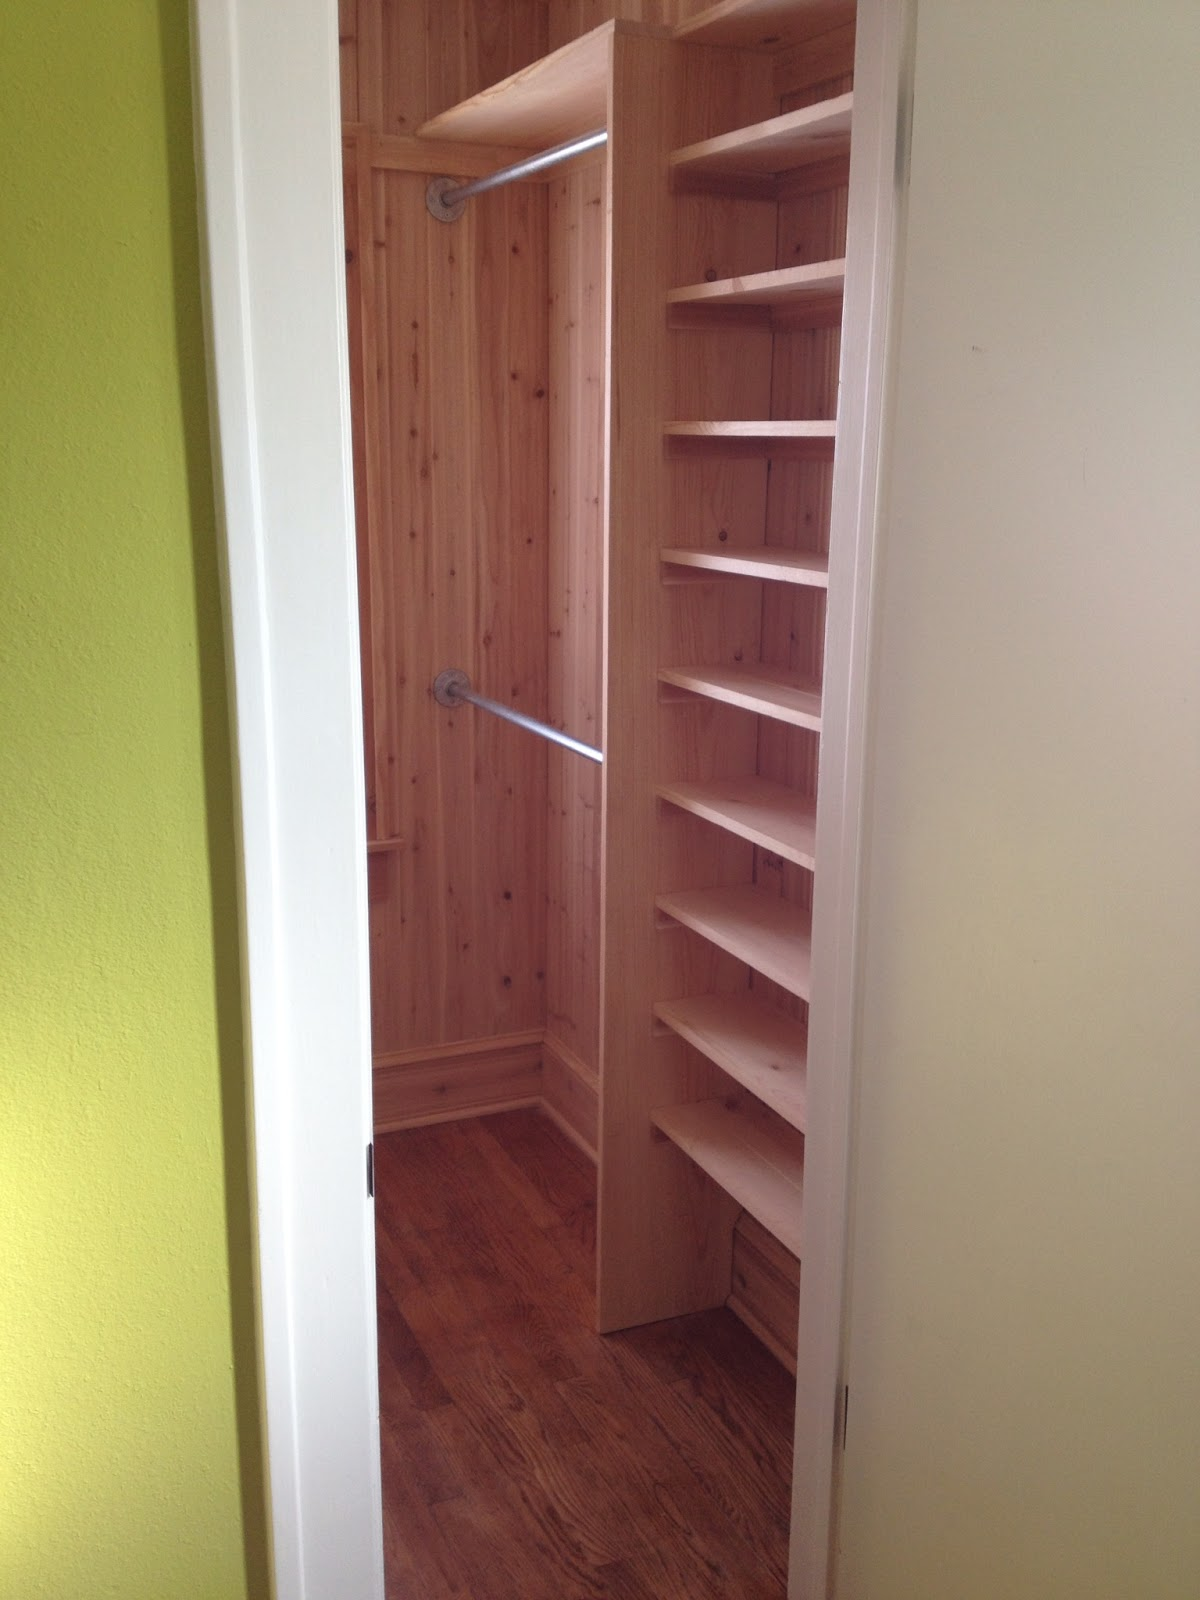 plus lumber cedar closet lined lining effectiveness with closets installation